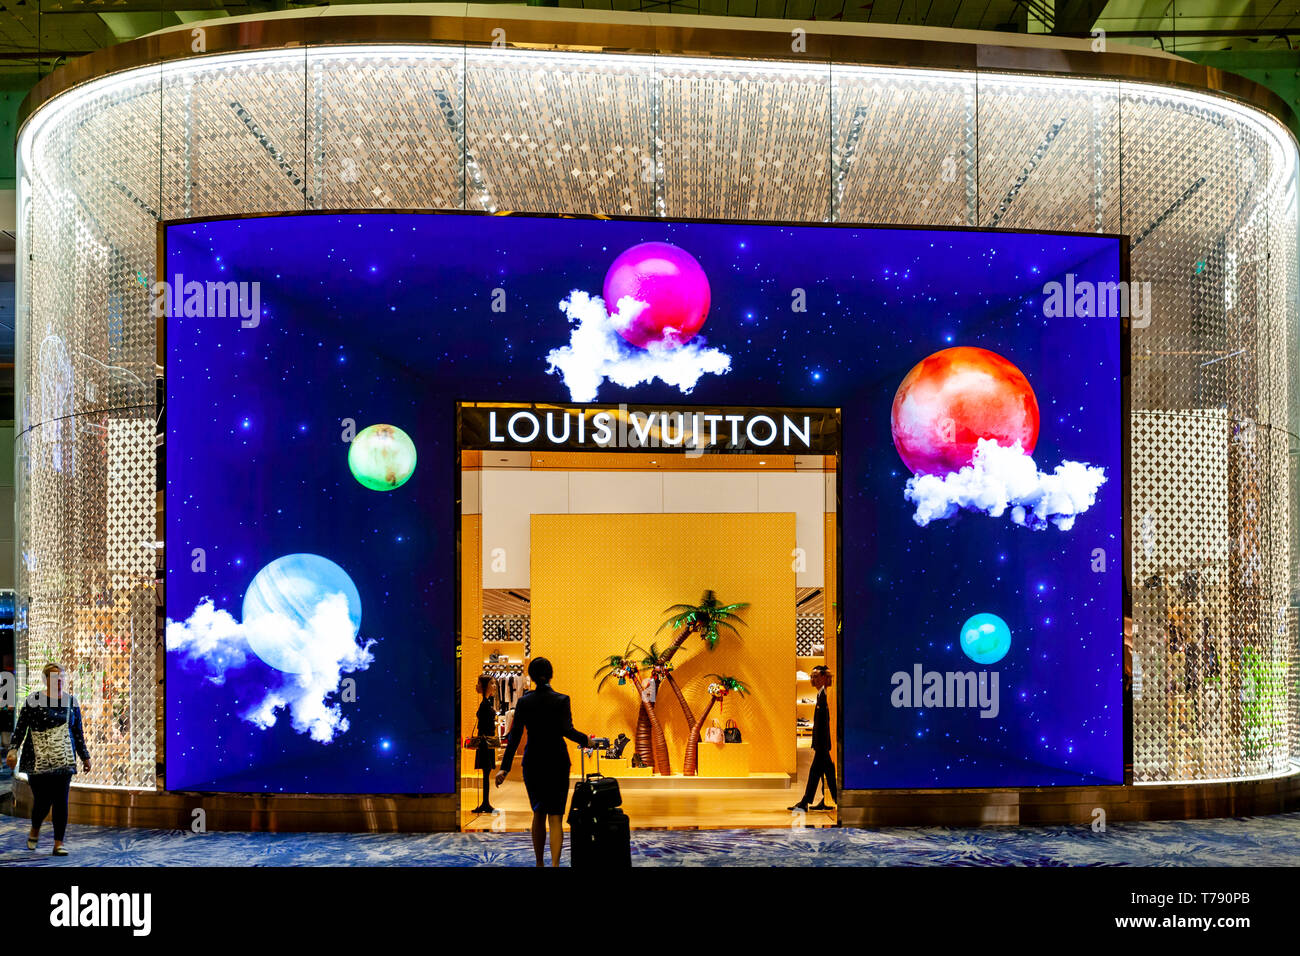 The Louis Vuitton Store, Changi Airport, Singapore, South East Asia - Stock Image